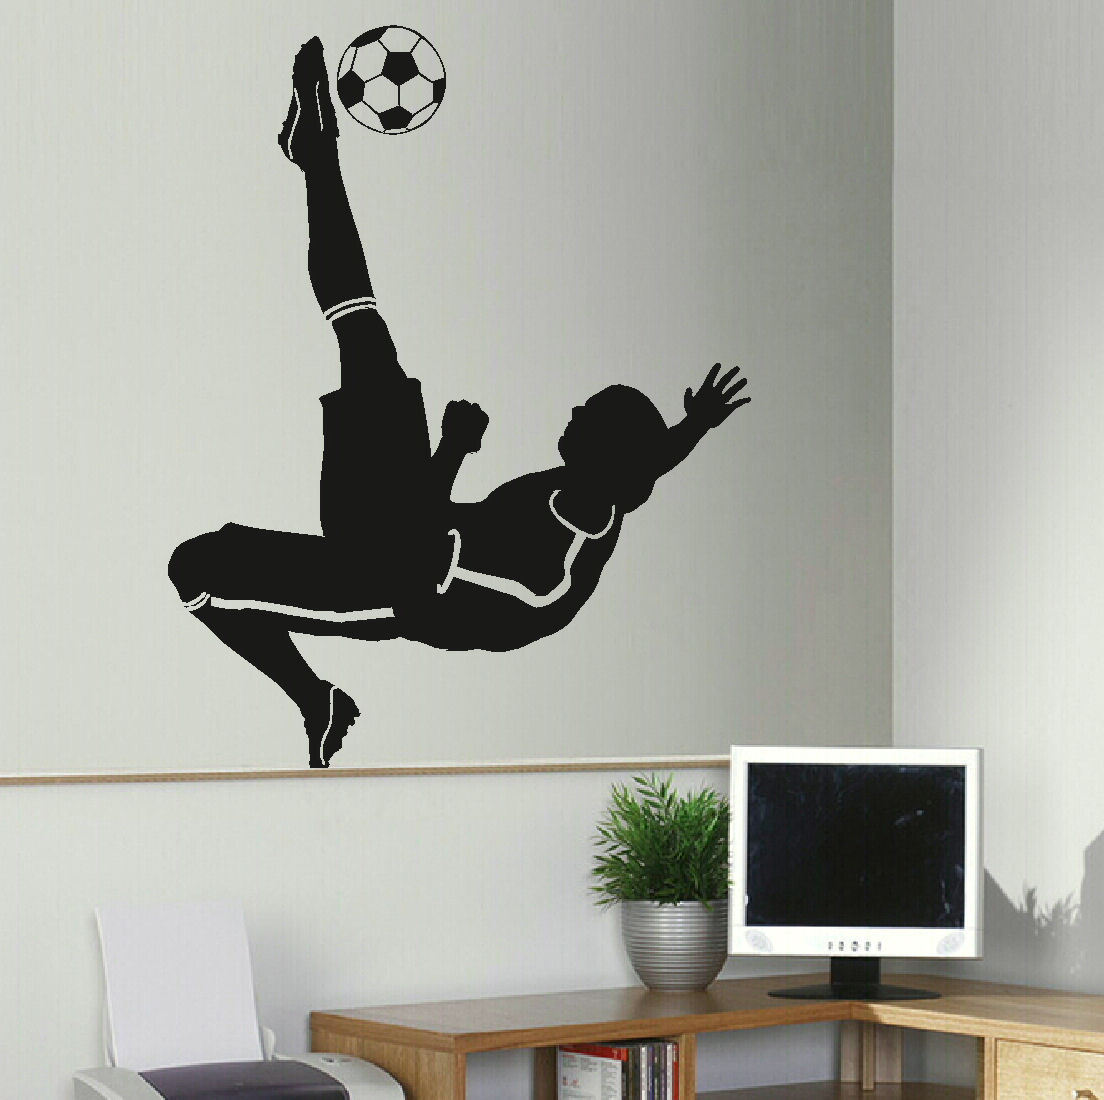 online buy wholesale football wall mural from china football wall mural wholesalers. Black Bedroom Furniture Sets. Home Design Ideas